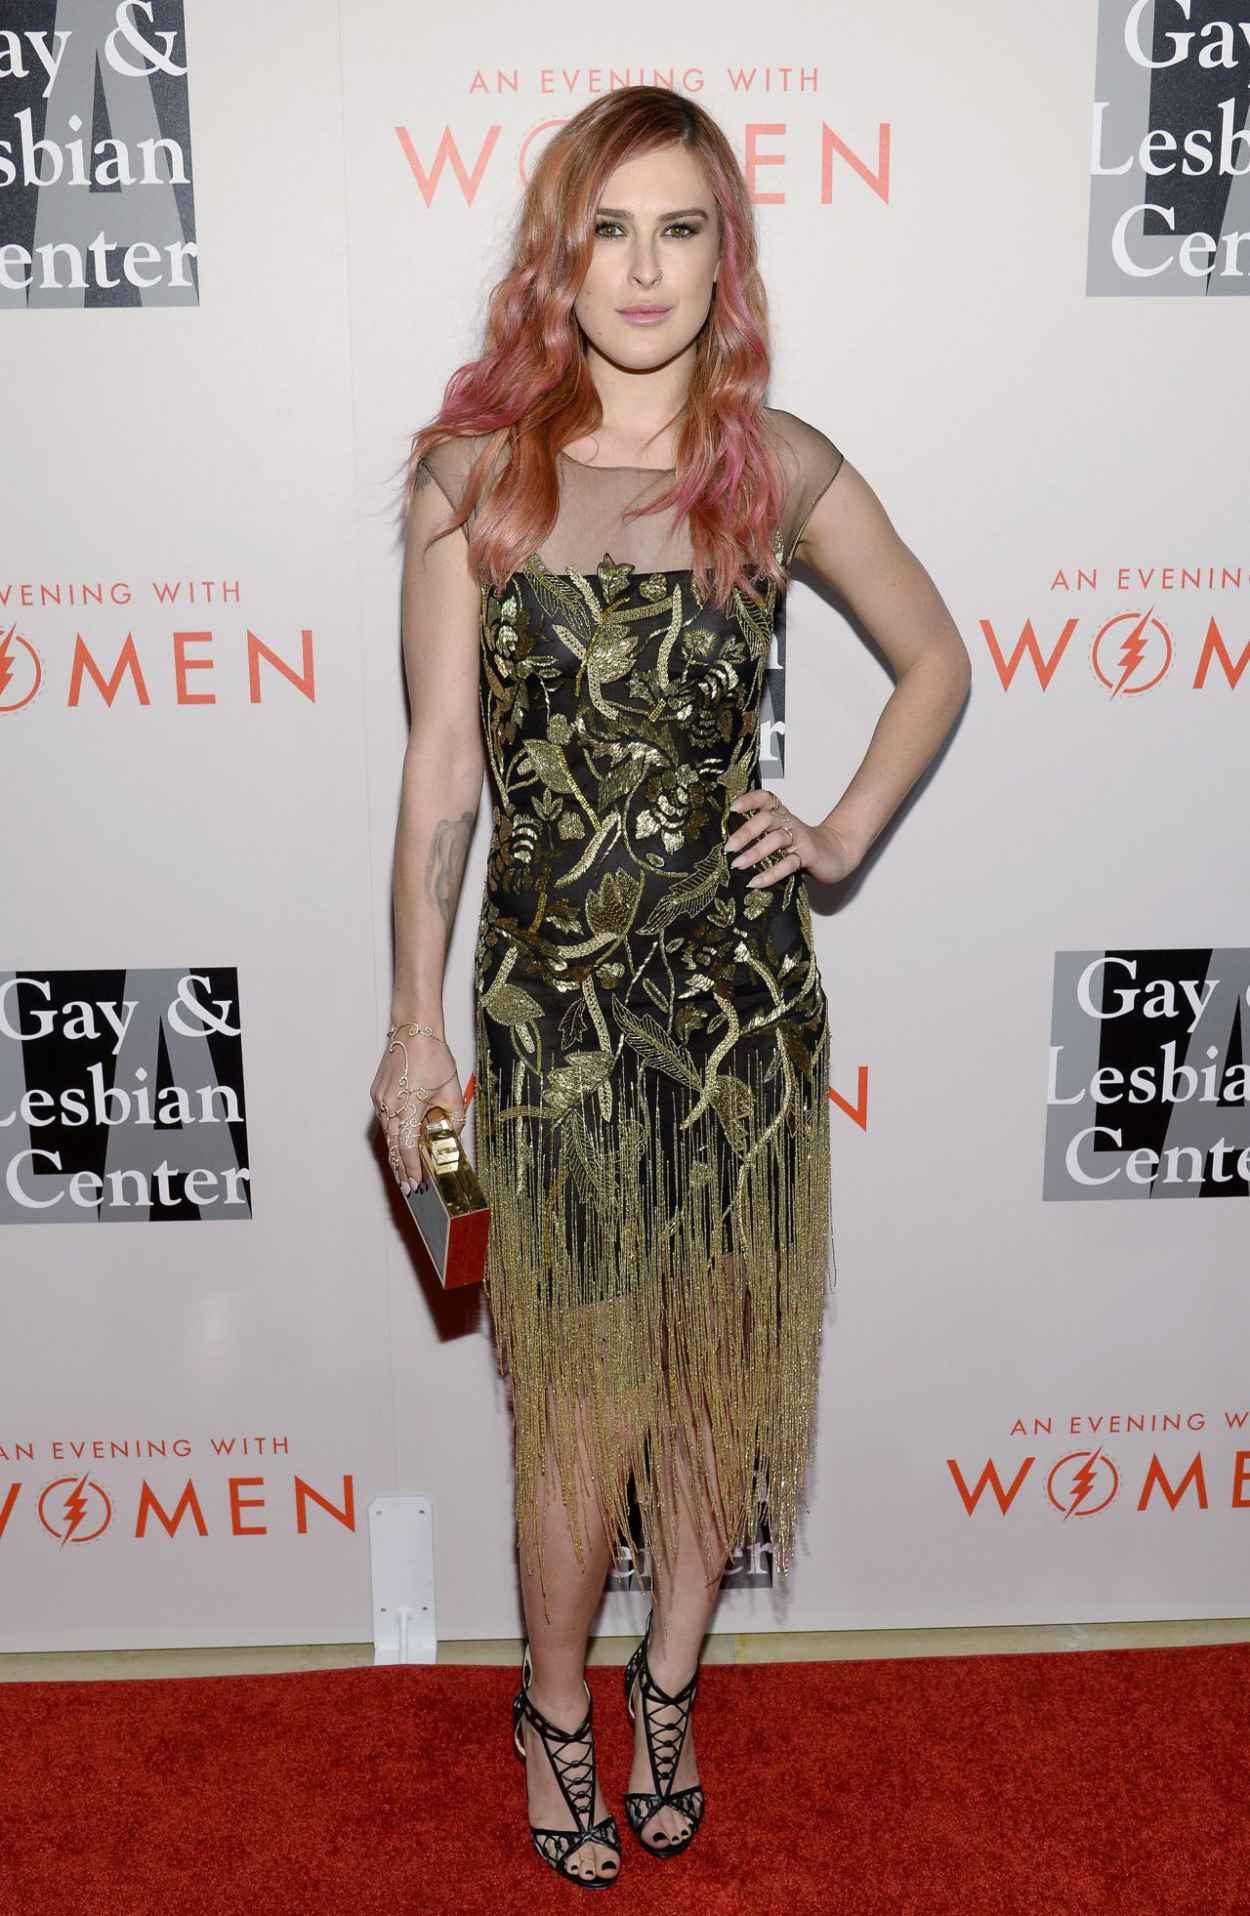 Rumer Willis - An Evening With Women - May 2015-2